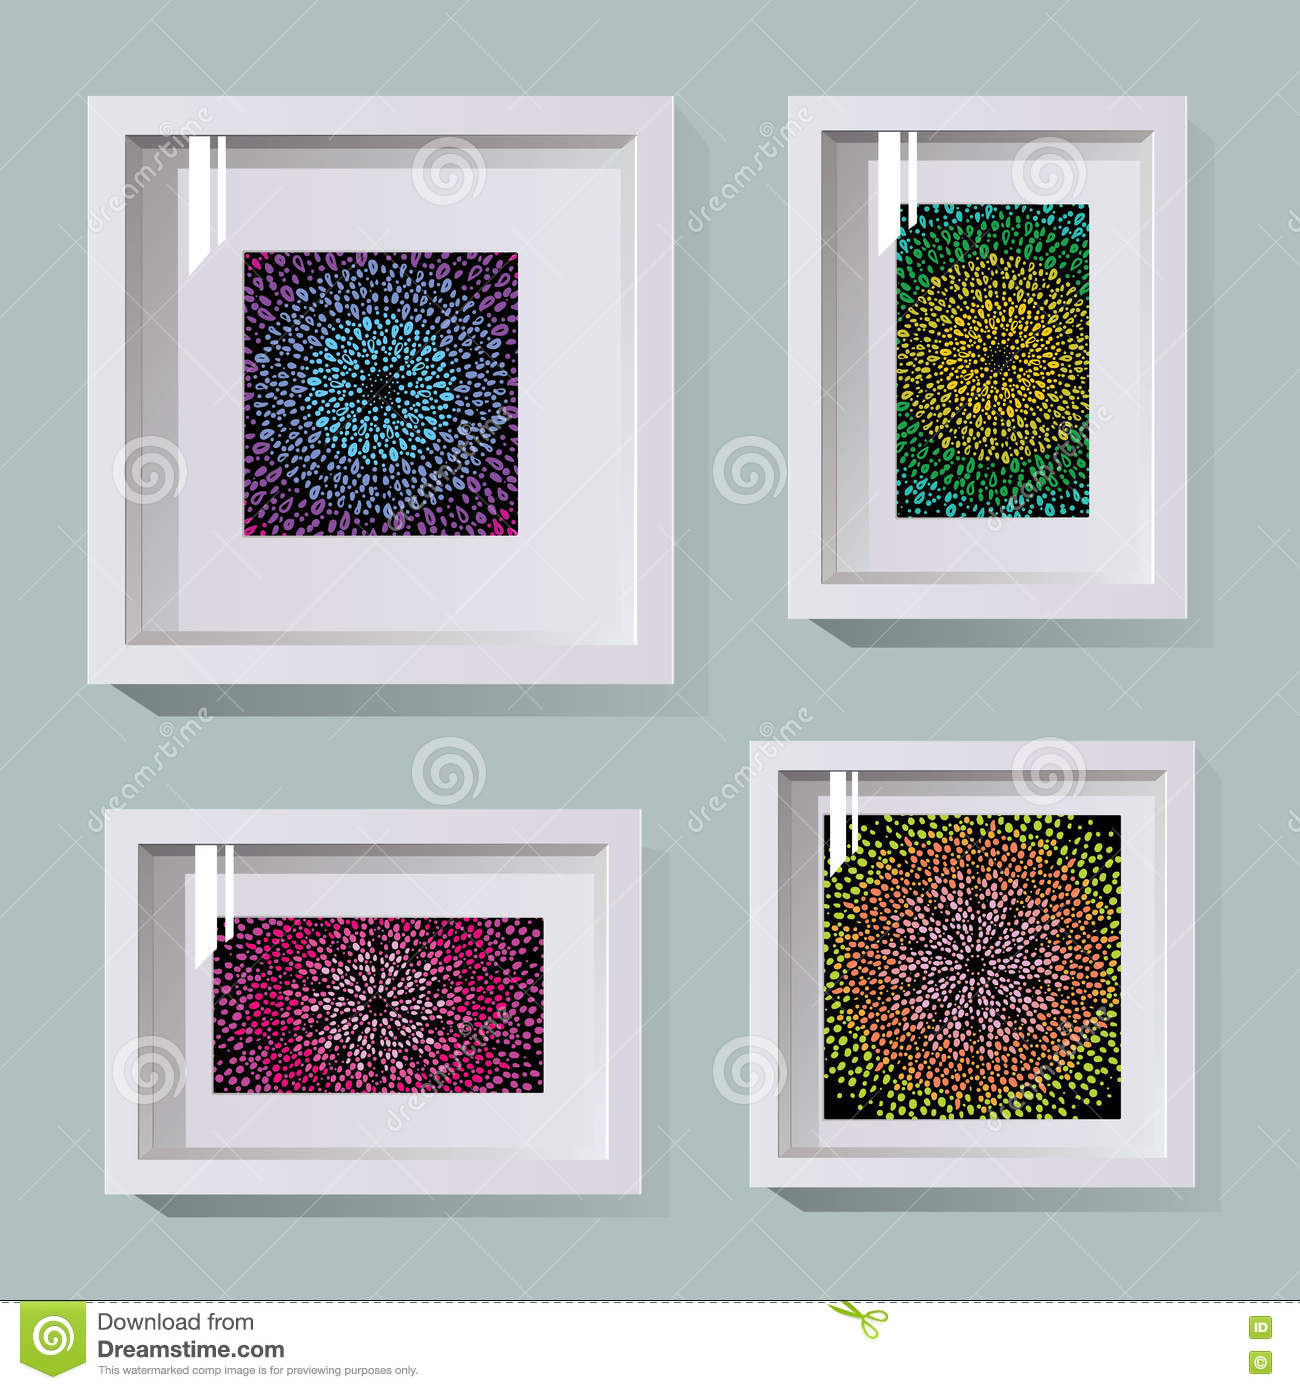 Frames in different sizes stock vector. Illustration of horizontal ...